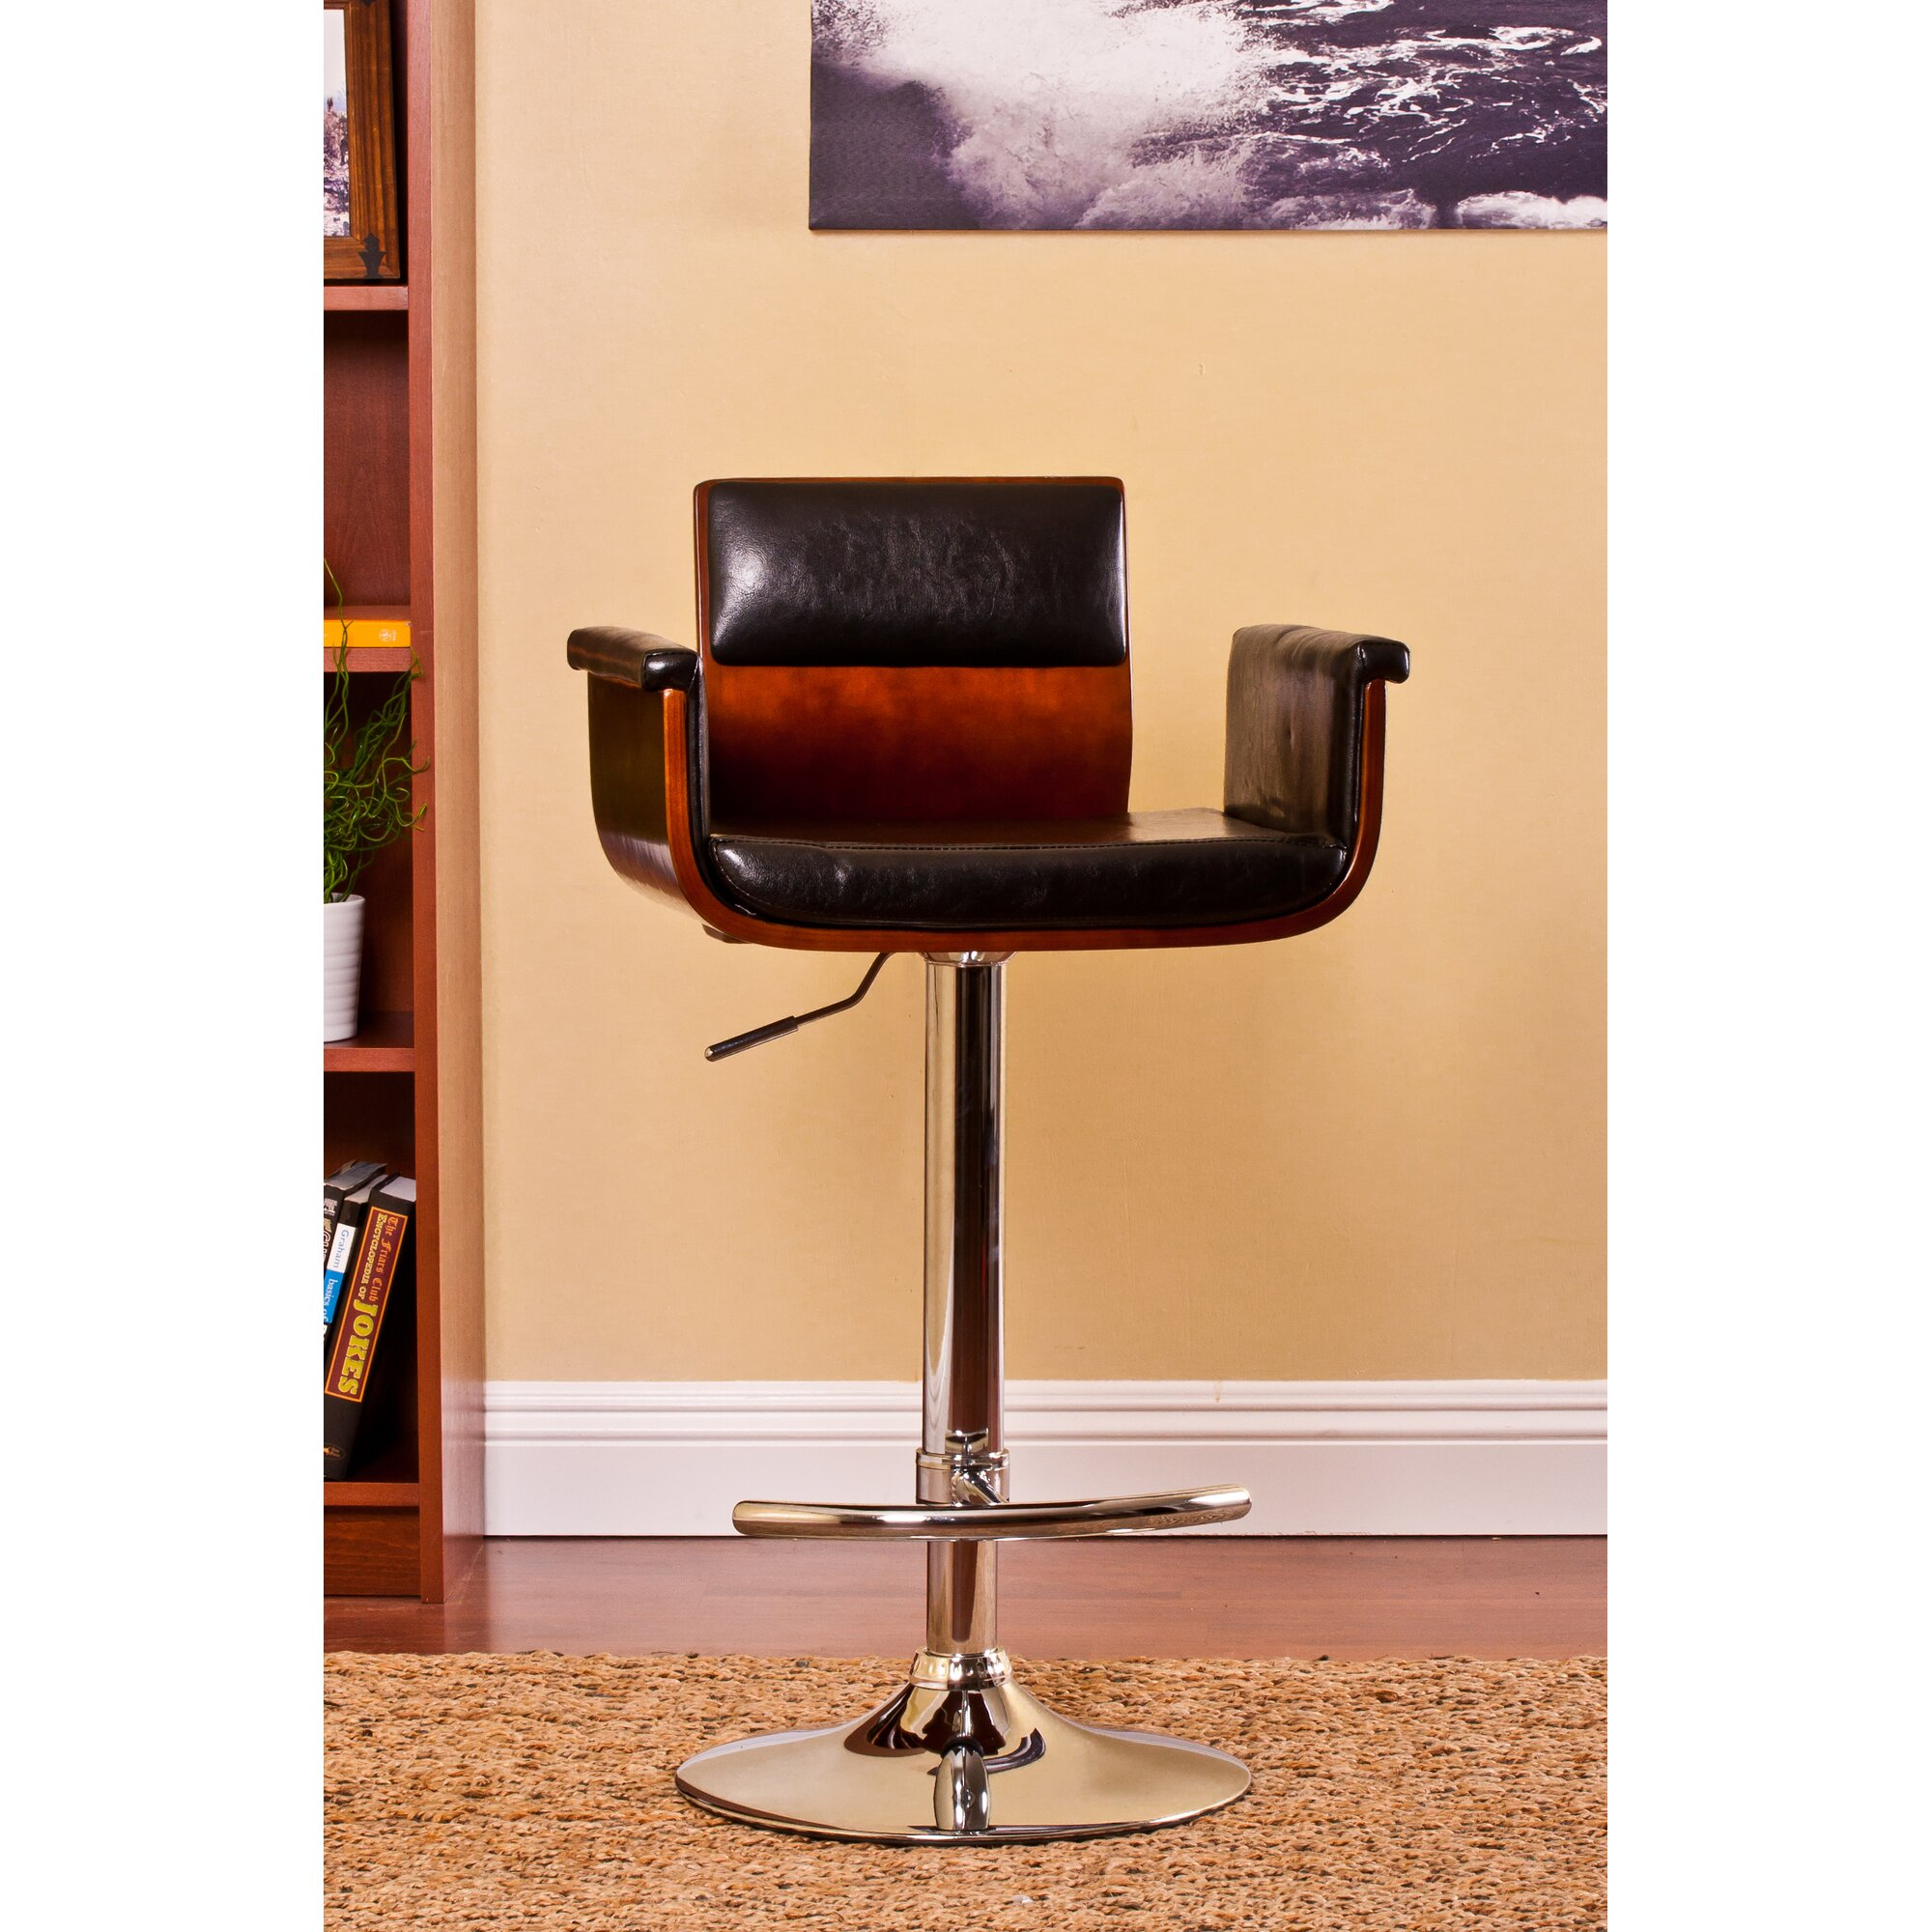 AC Pacific Adjustable Height Swivel Arm Bar Stool & Reviews | Wayfair